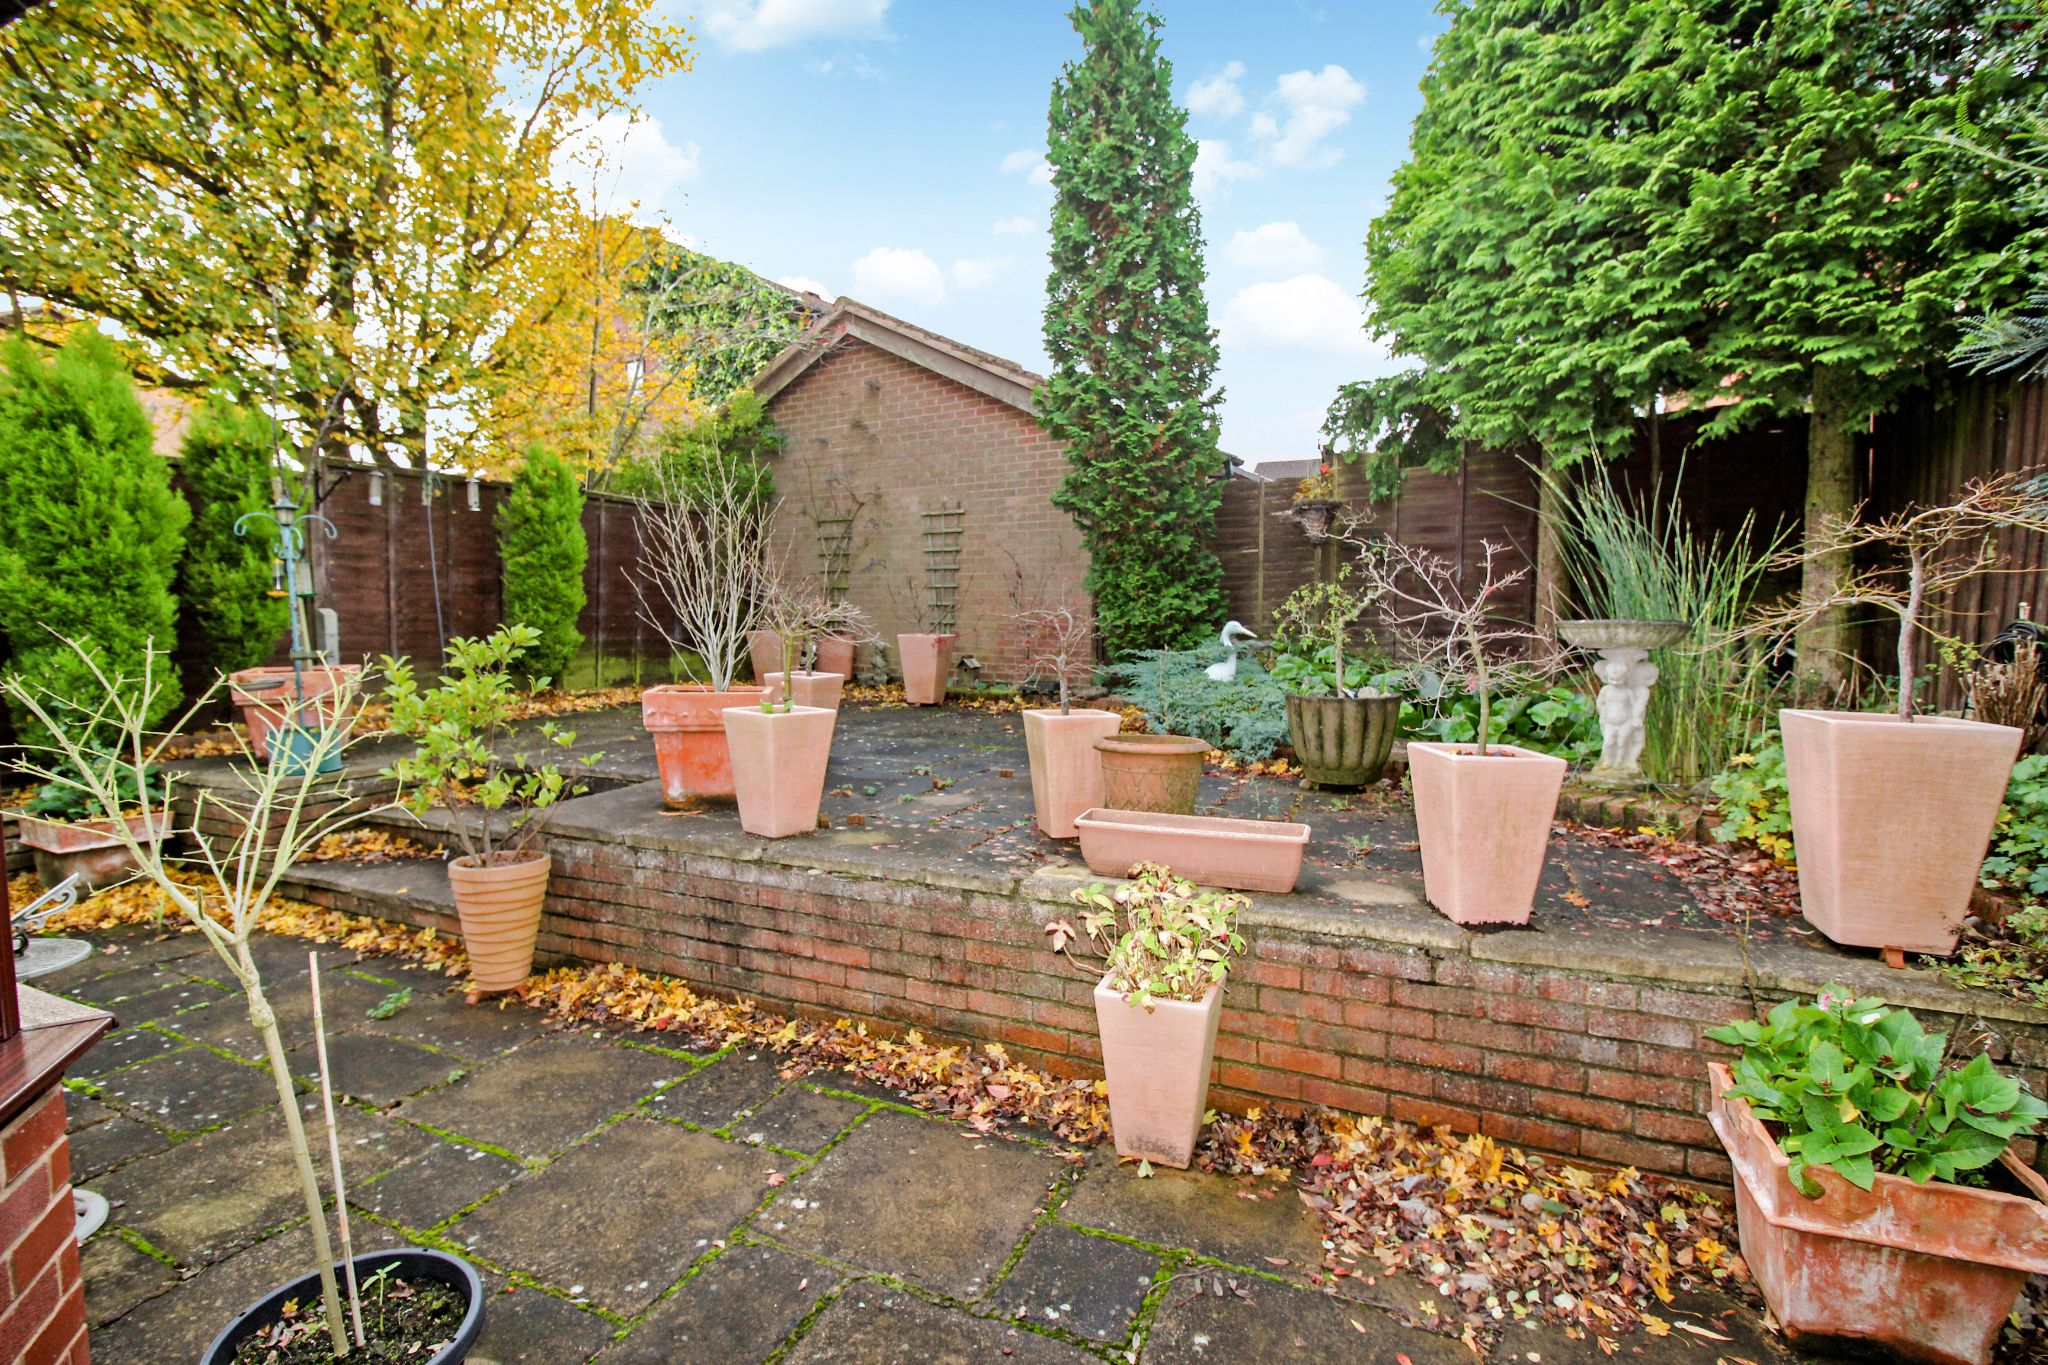 4 bedroom detached house SSTC in Solihull - Photograph 16.